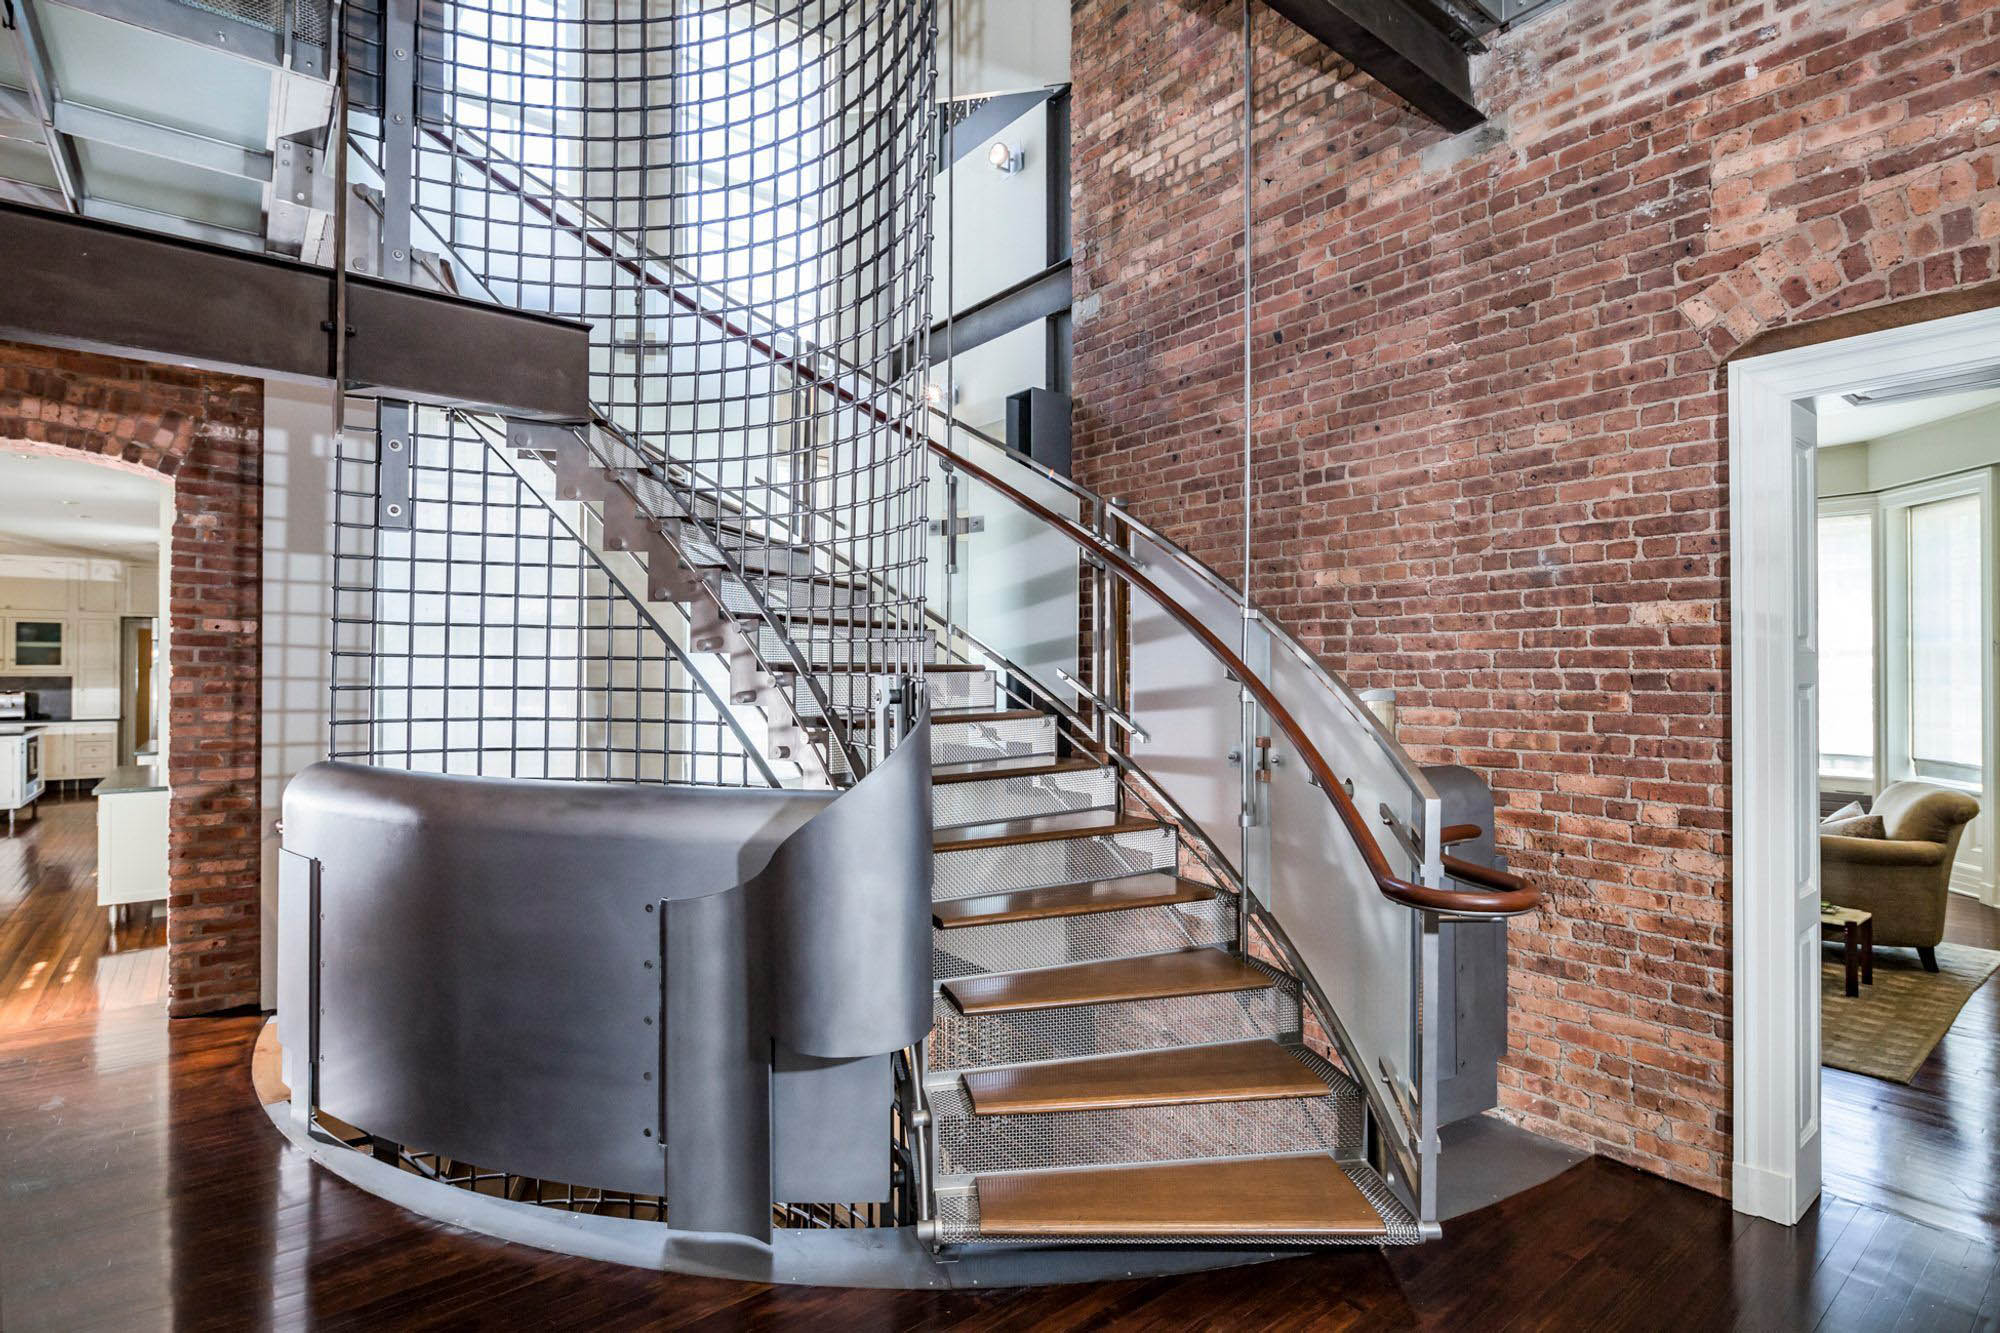 Modern industrial staircase design with aluminum, steel, wood and glass. Red brick walls and dark stained hardwood floors.